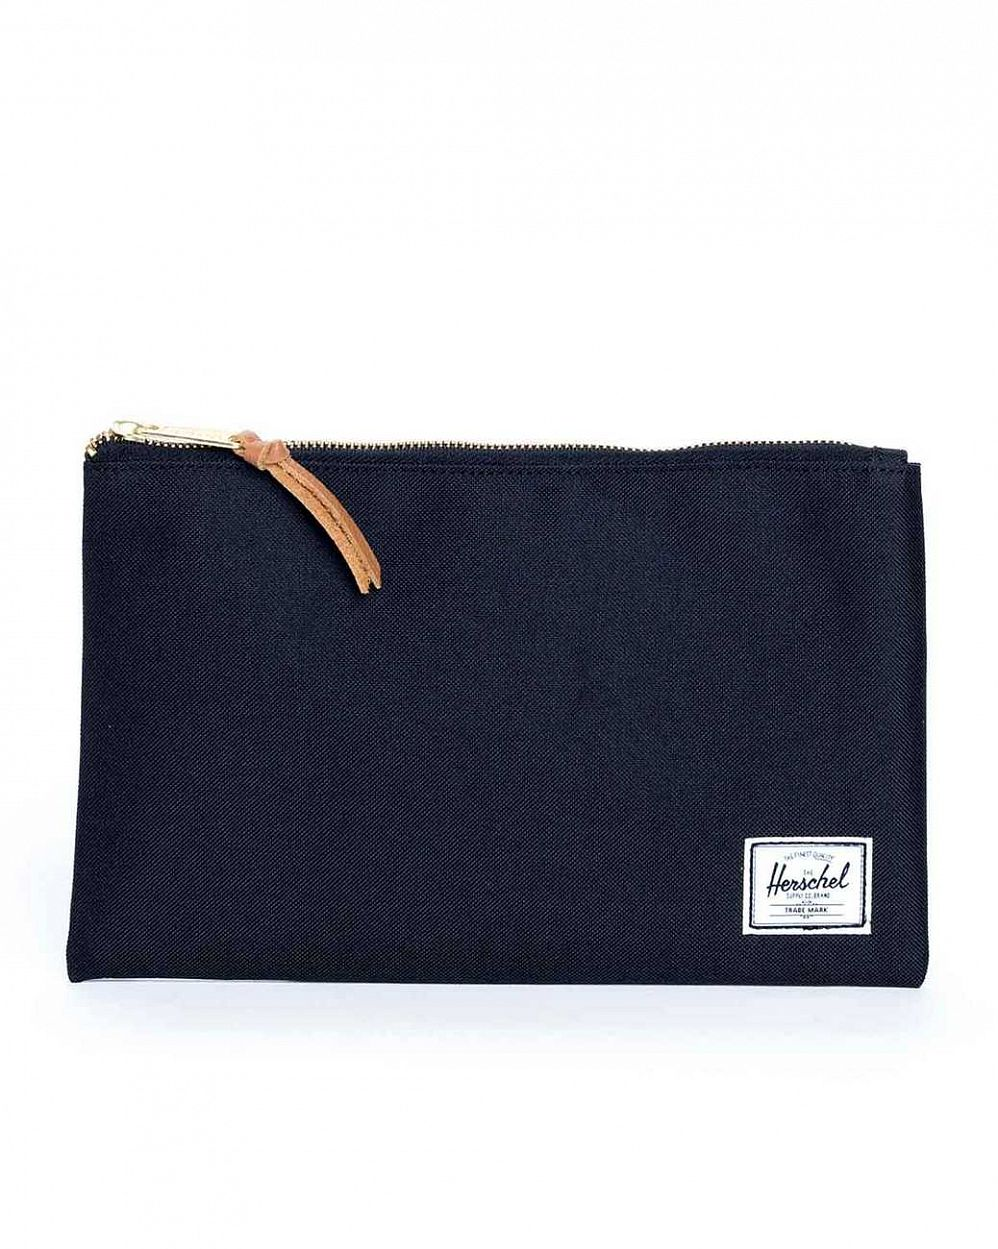 Клатч Herschel Network Medium Black отзывы